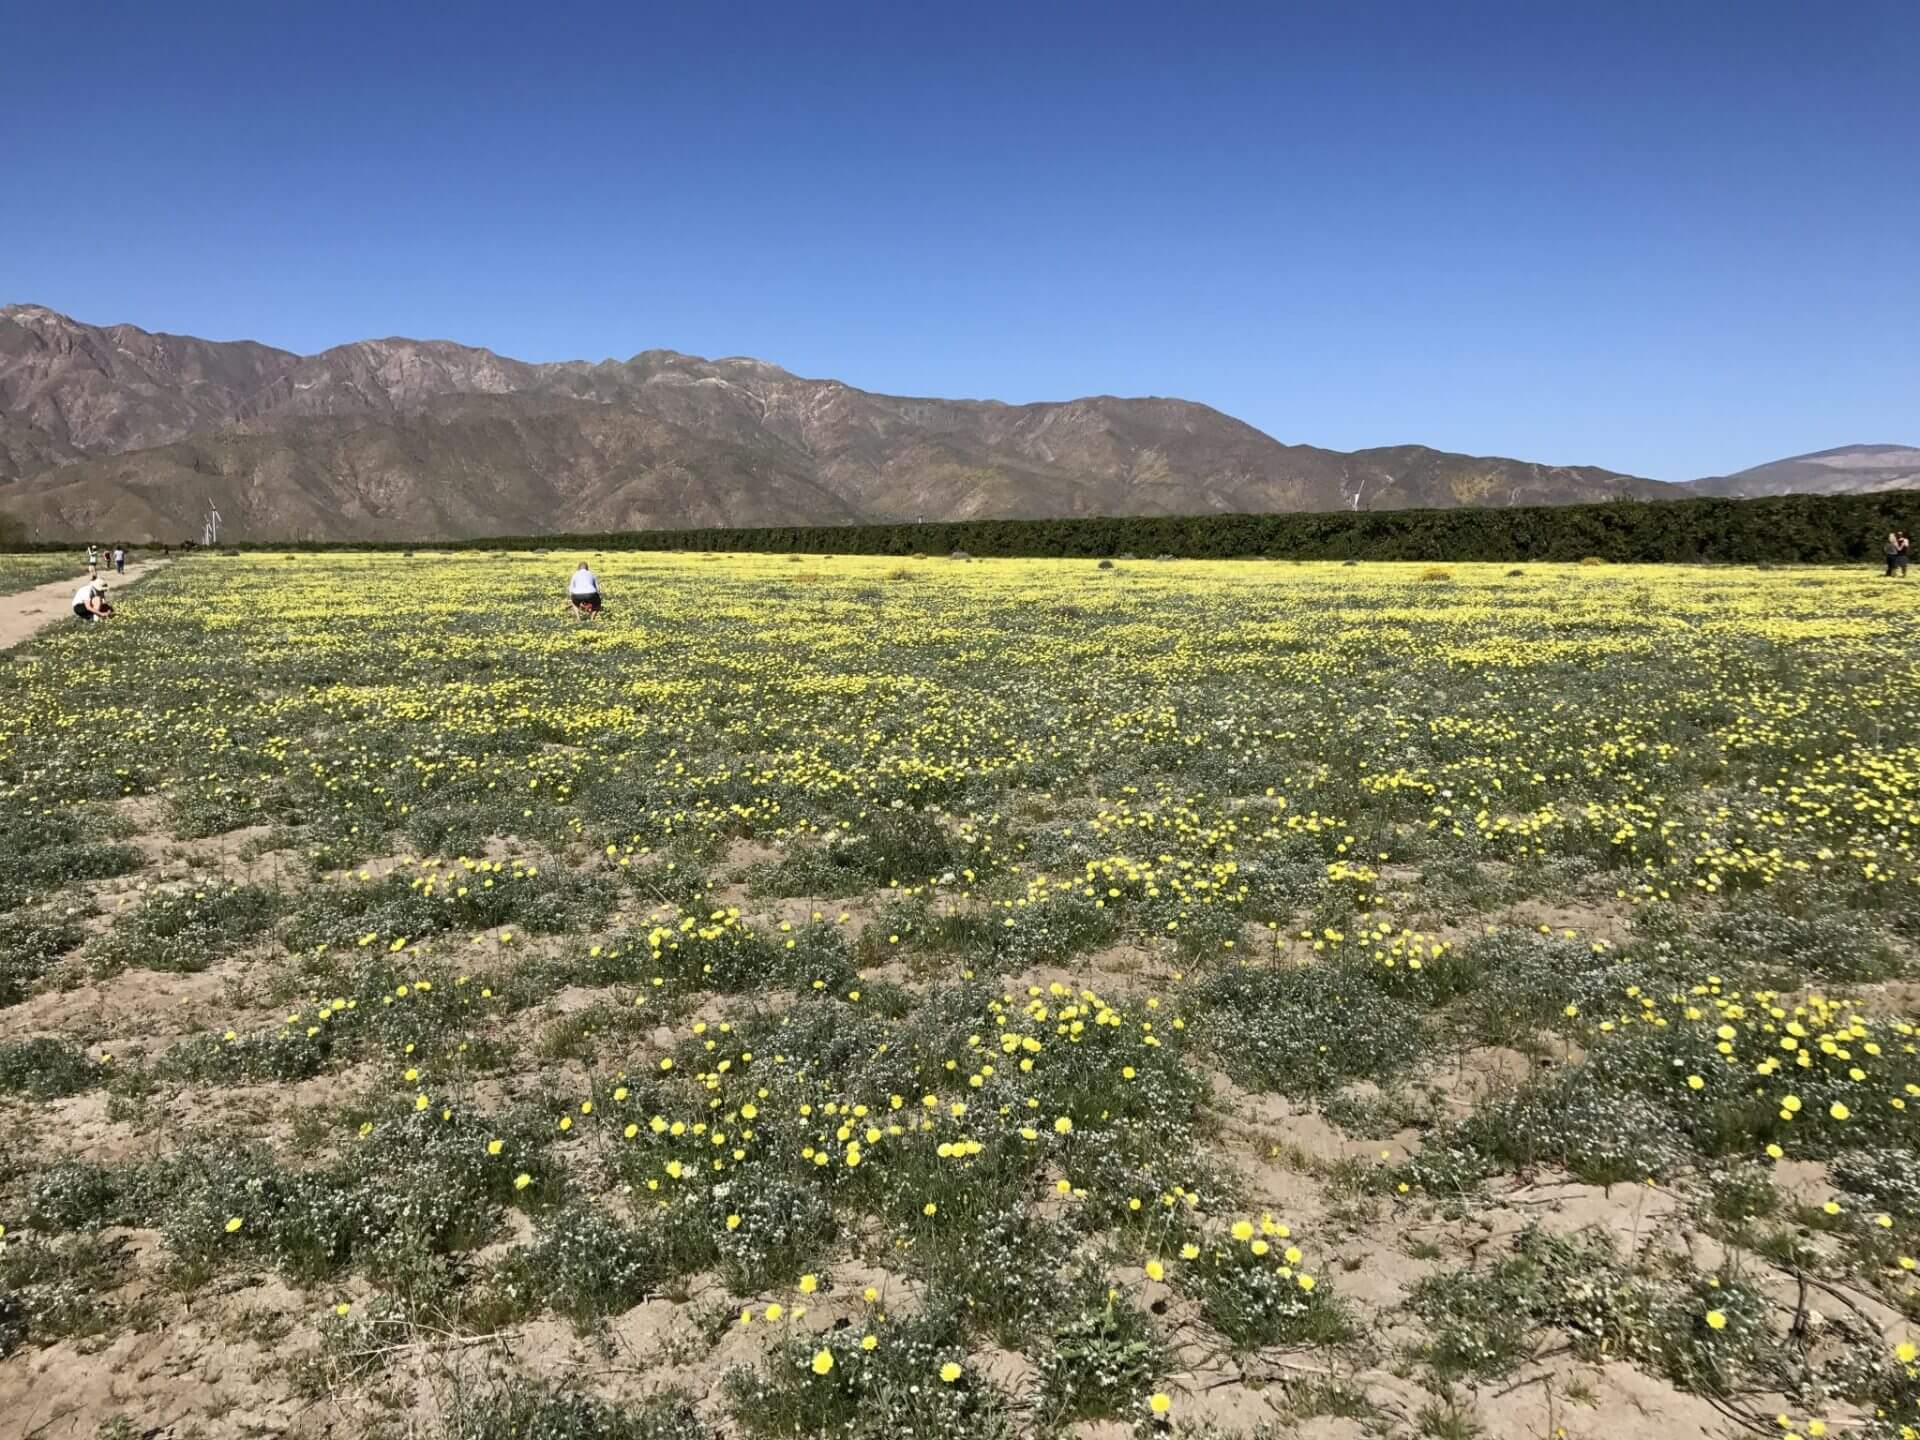 anza borrego state park wildflower road trip march 2017 all day